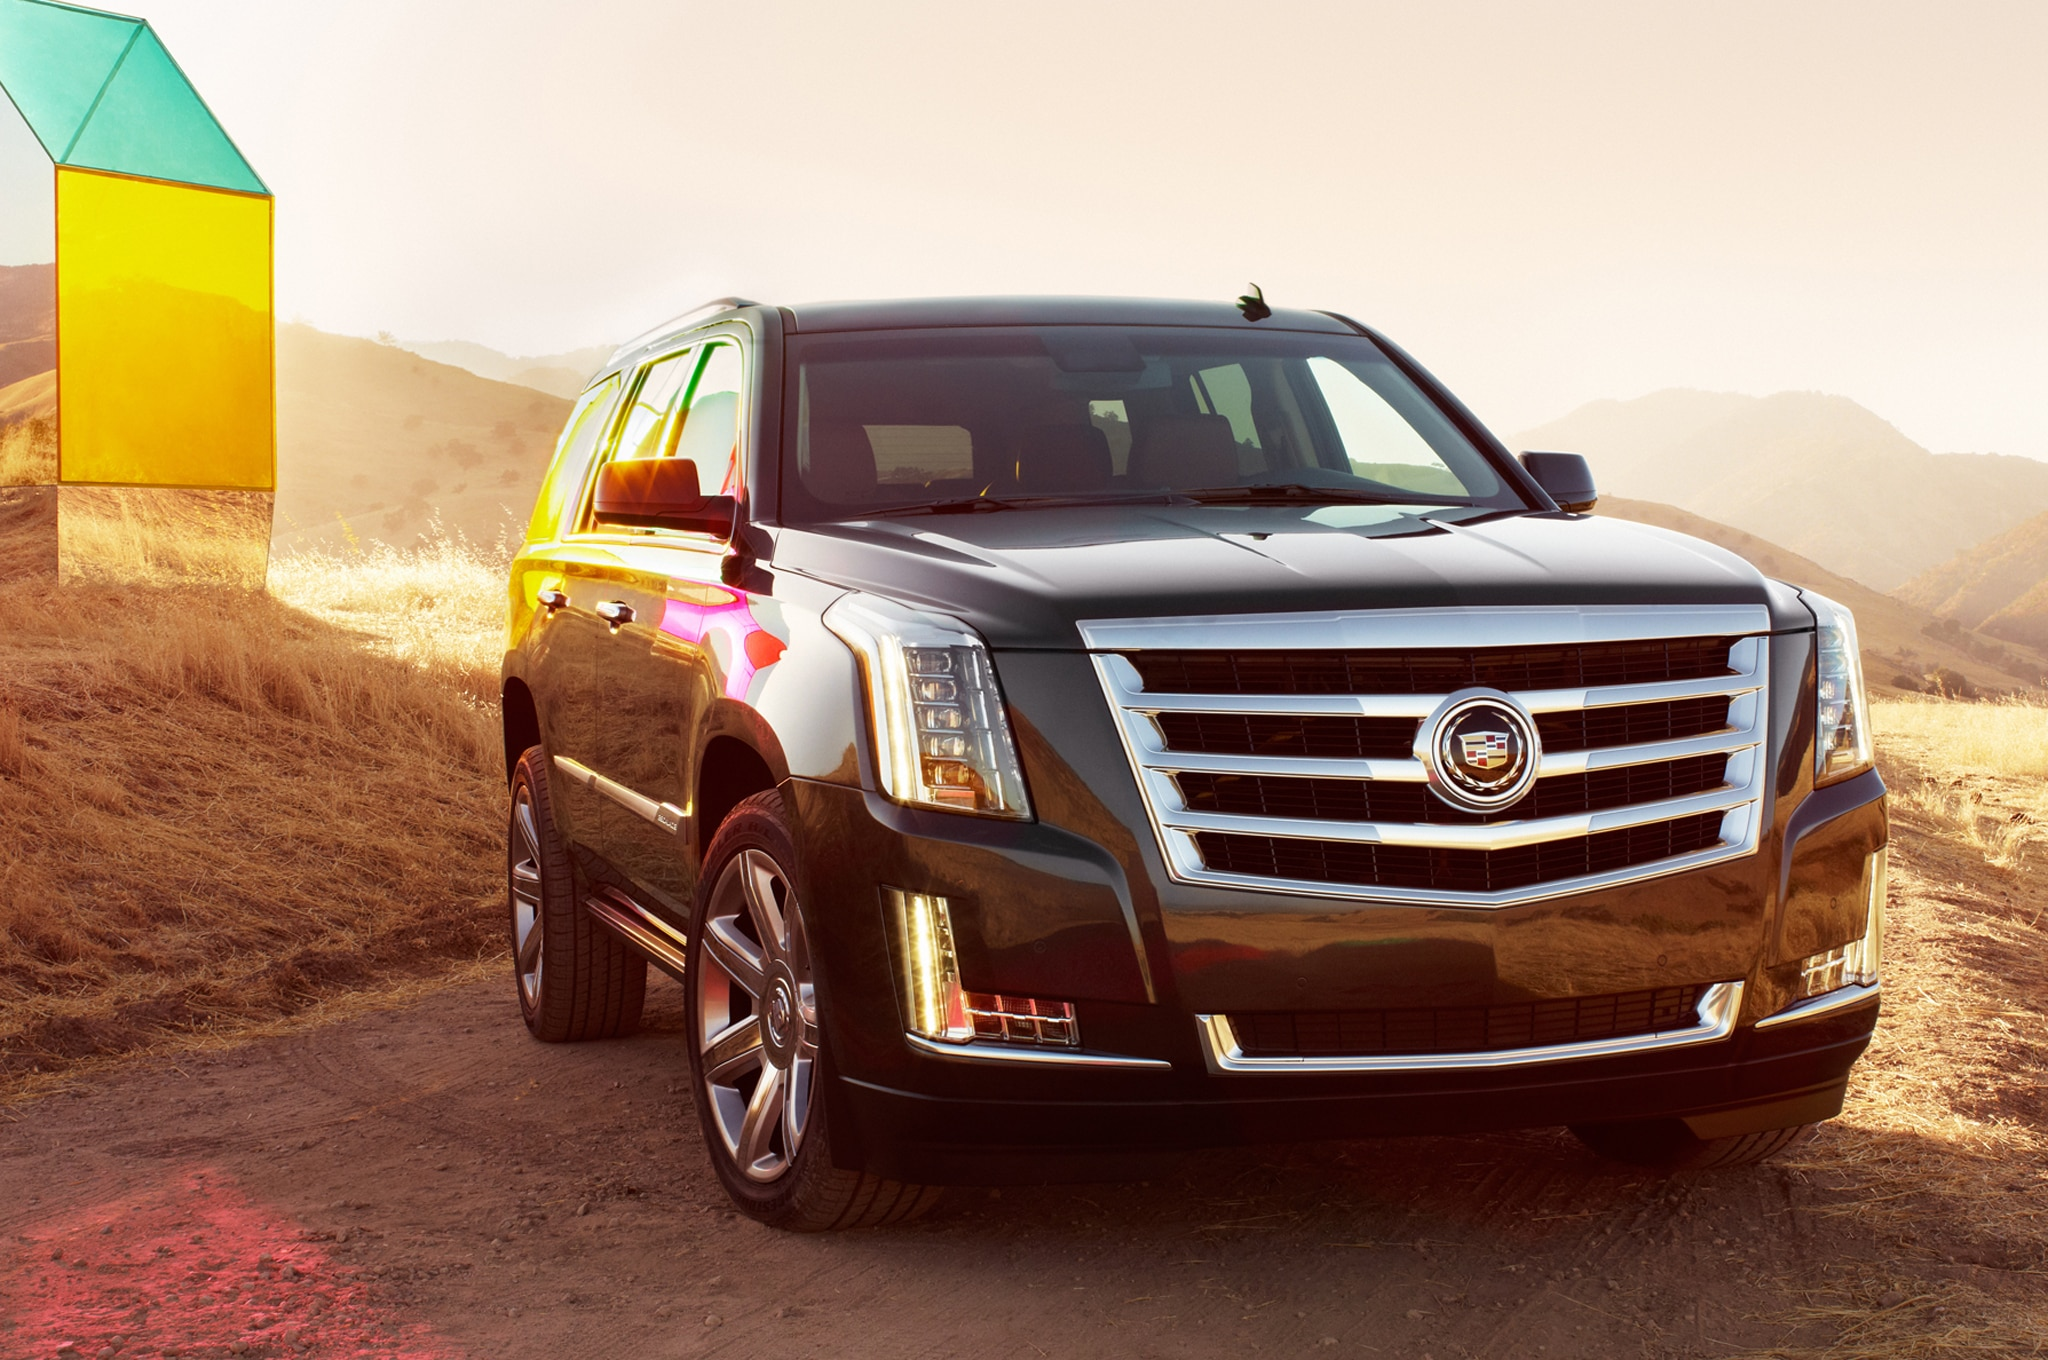 2015 Cadillac Escalade front three quarters